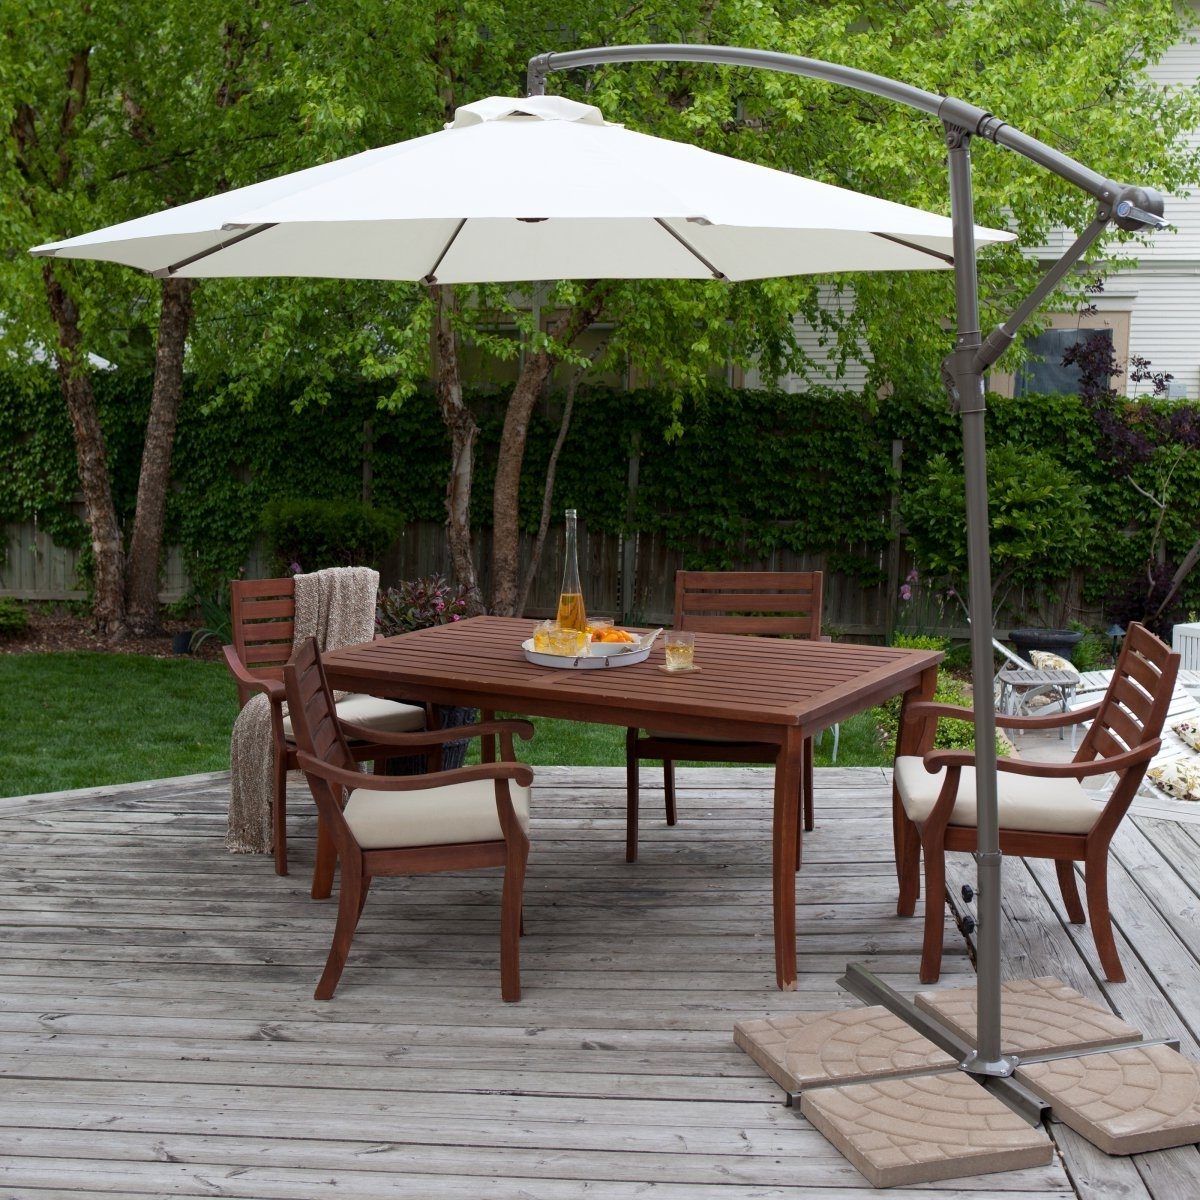 2019 The Patio Table Umbrella For Comfort Gathering — Mistikcamping Home Inside Patio Tables With Umbrellas (View 7 of 20)